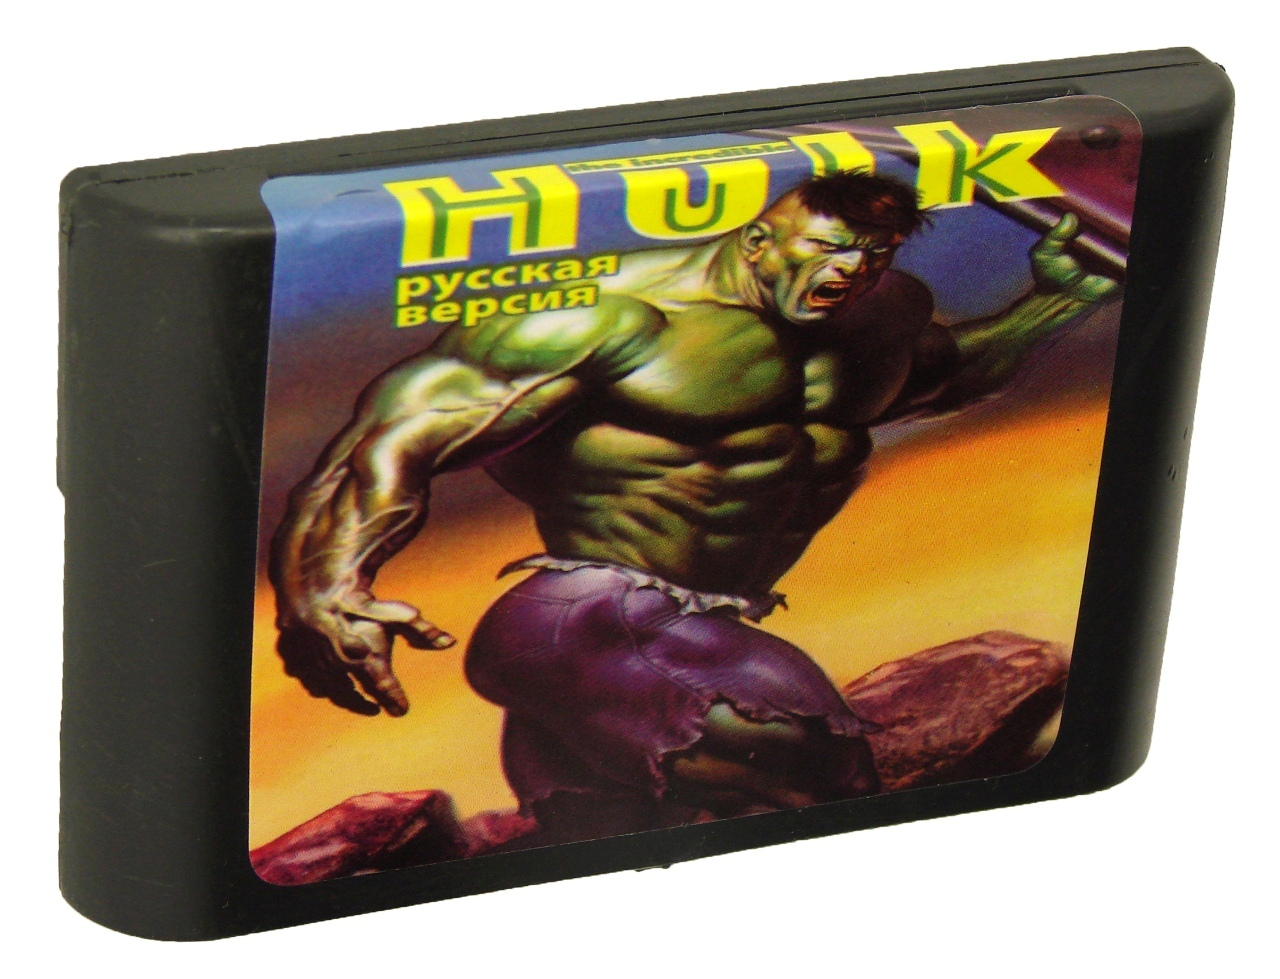 Картридж для Sega HULK: the incredible (Sega)